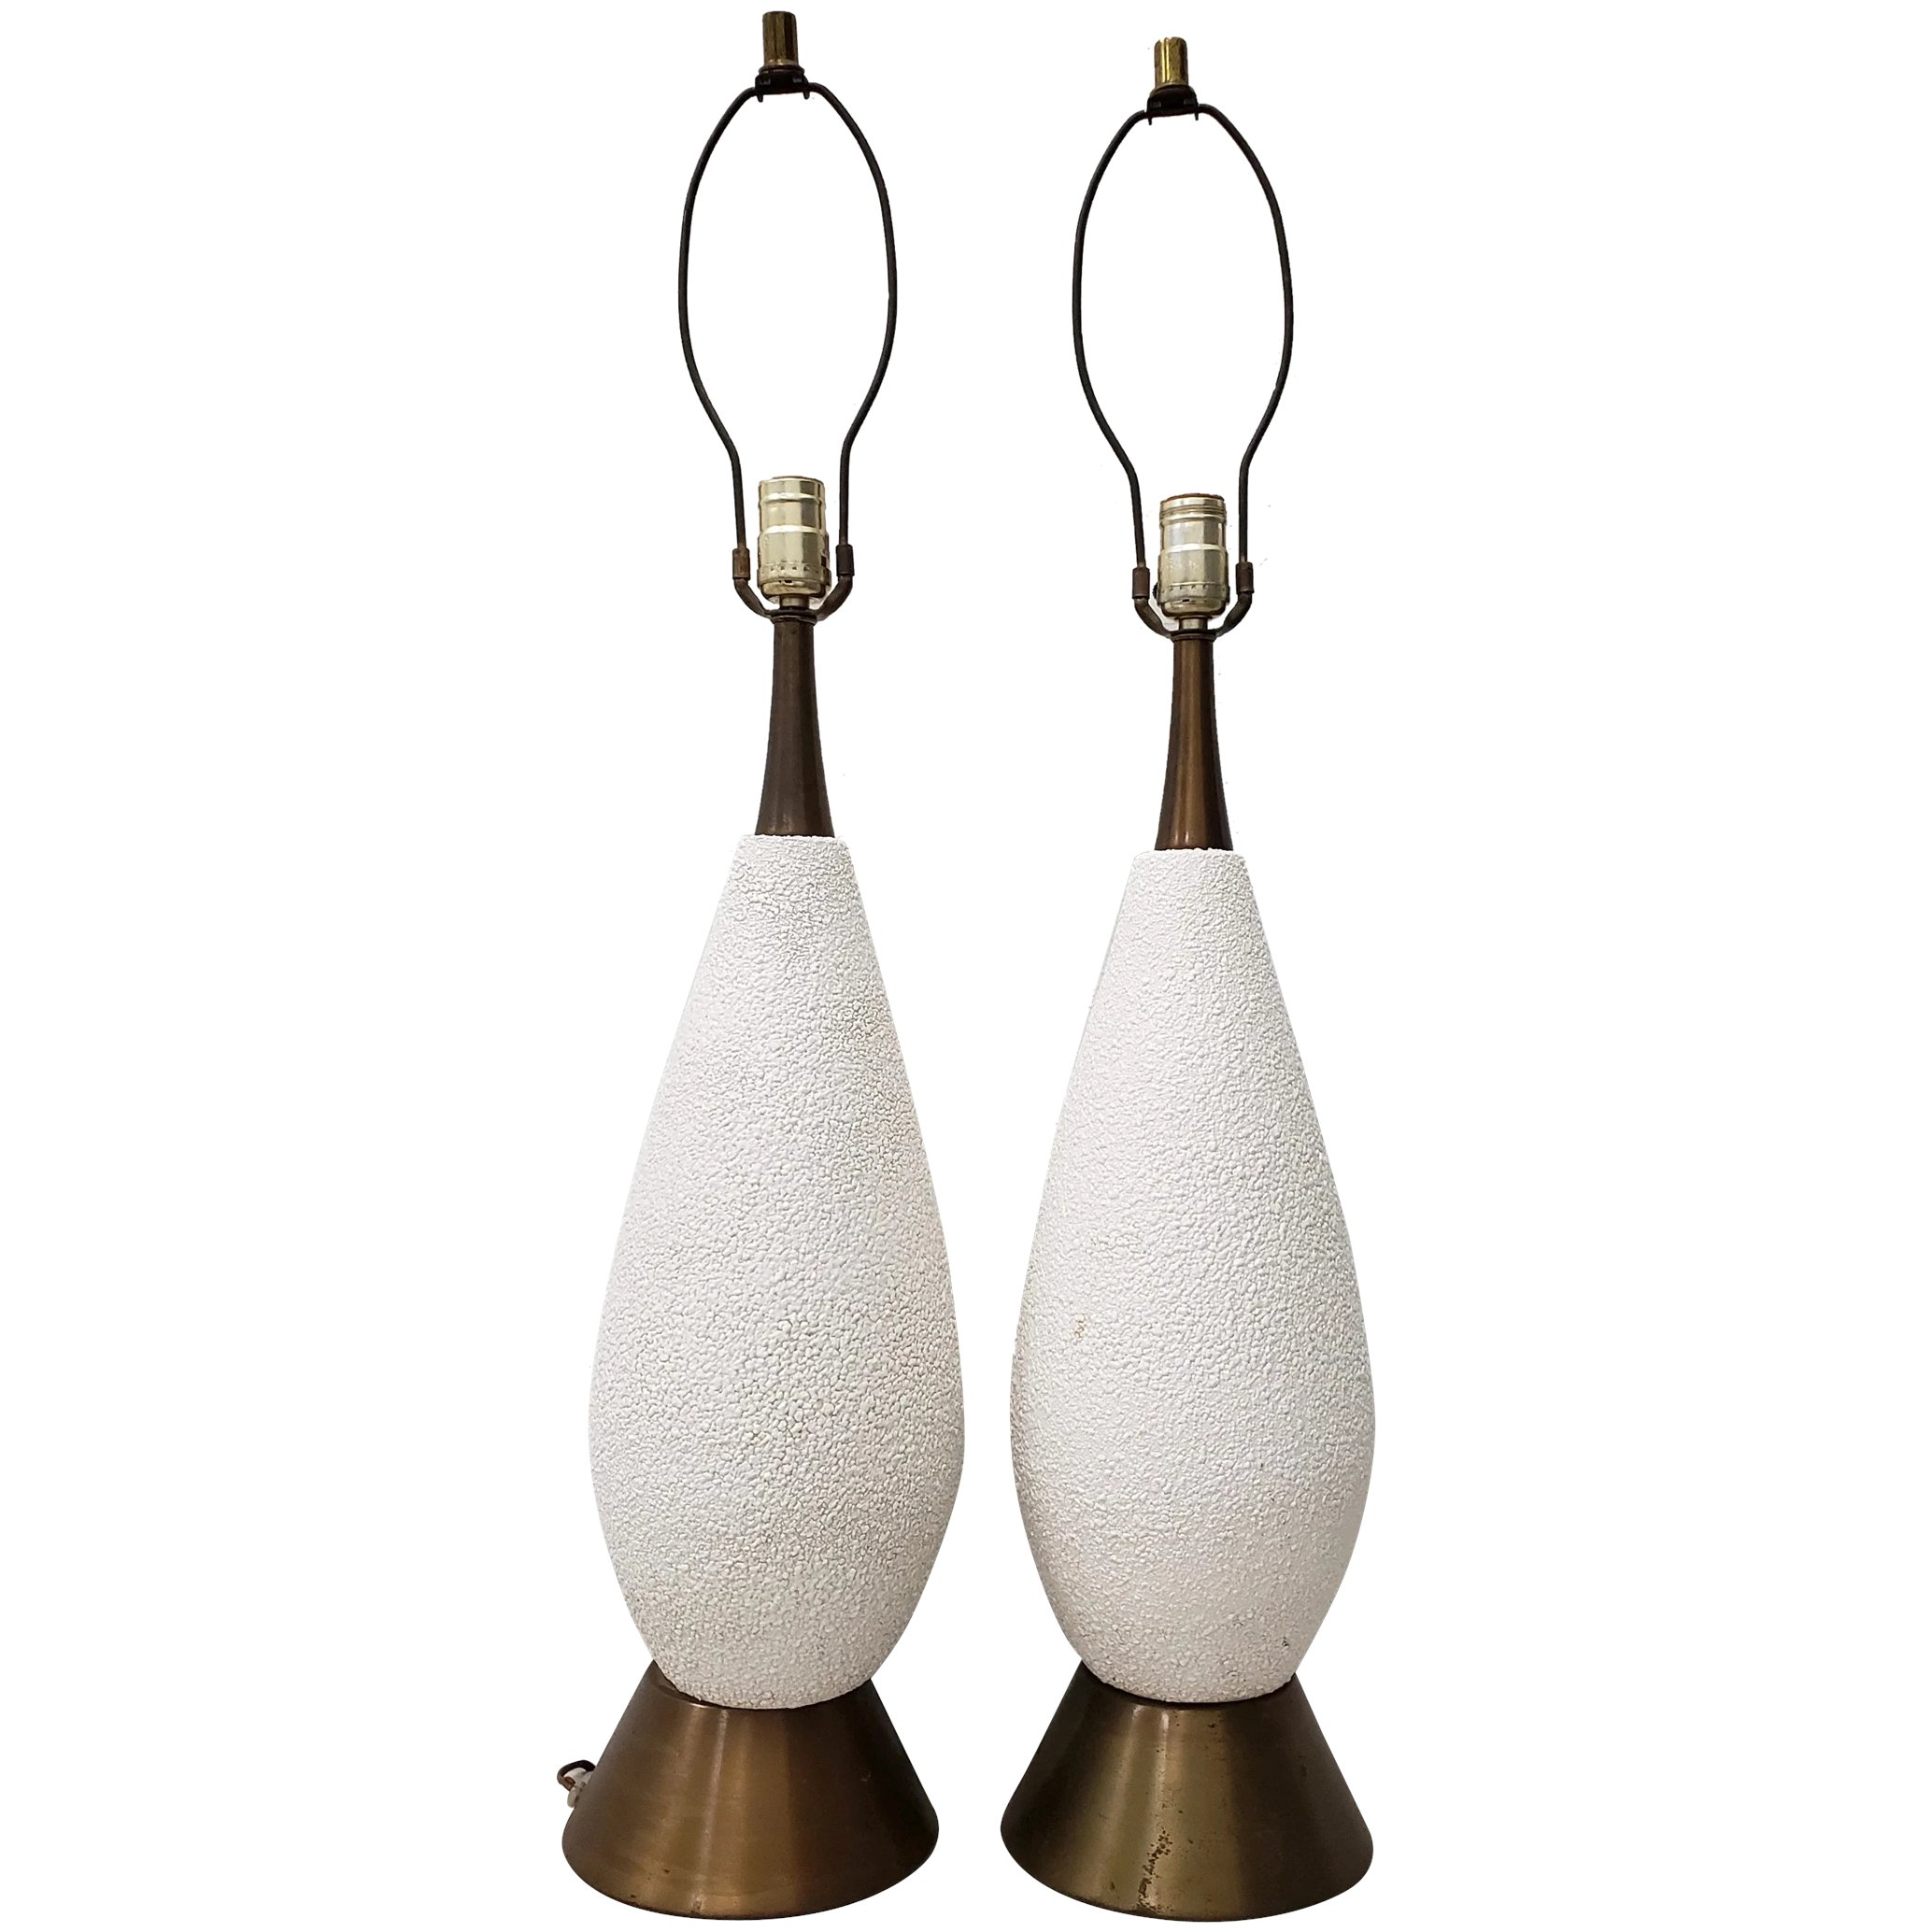 Pair Of Mid Century Modern White Textured Ceramic Table Lamps